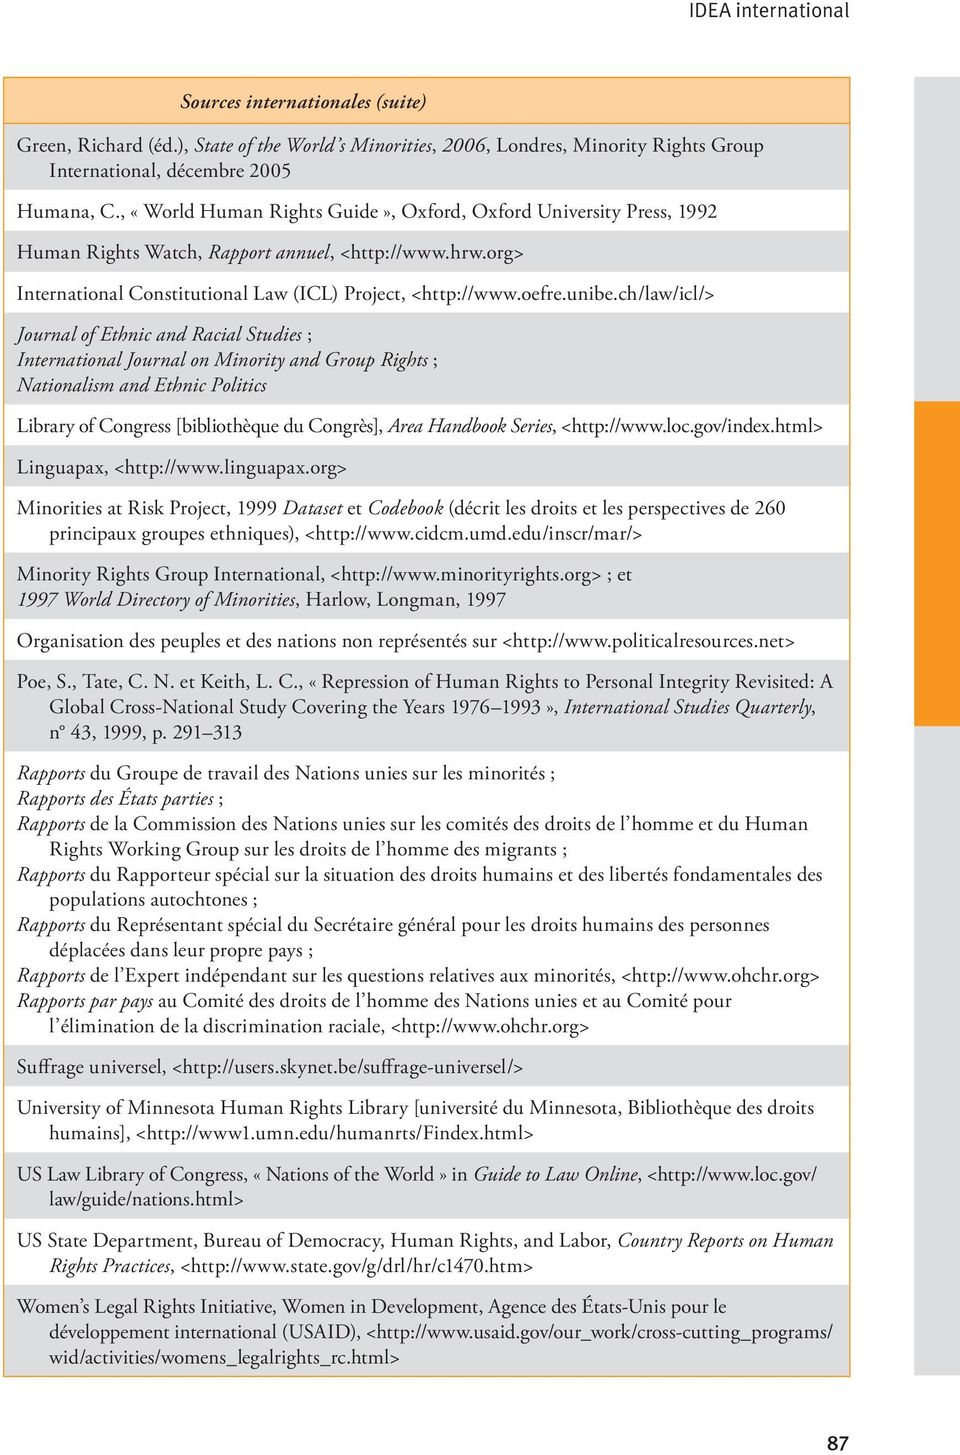 ch/law/icl/> Journal of Ethnic and Racial Studies ; International Journal on Minority and Group Rights ; Nationalism and Ethnic Politics Library of Congress [bibliothèque du Congrès], Area Handbook